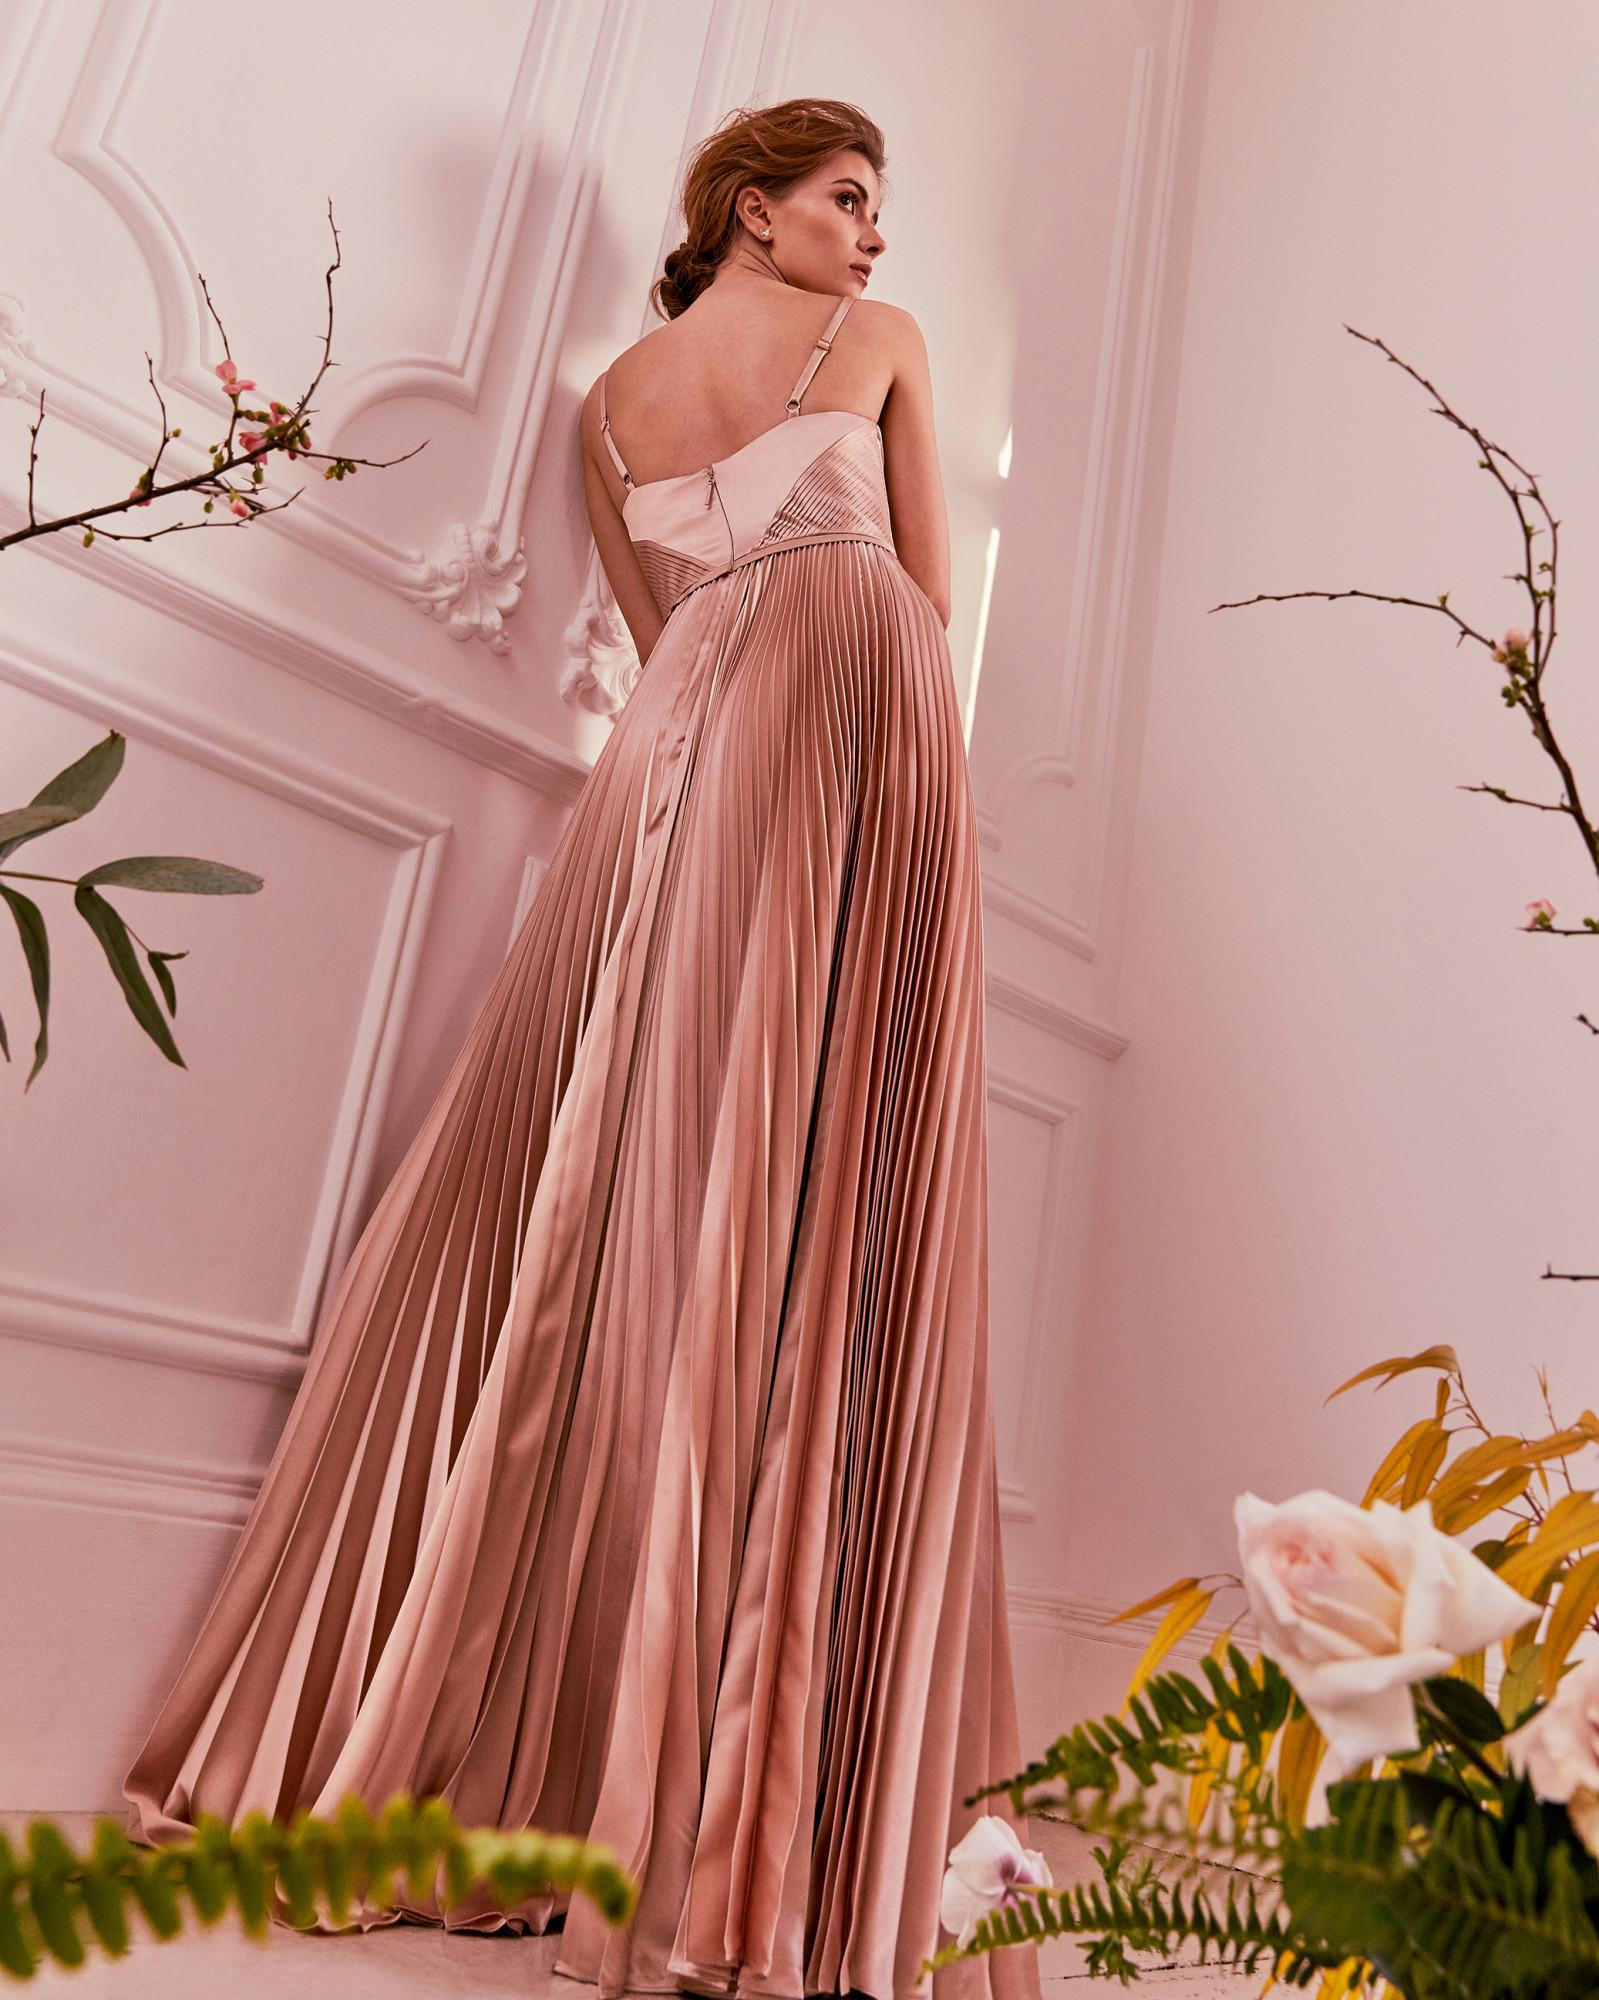 b66d01ef97a6 Lyst - Ted Baker Pleated Satin Maxi Dress in Pink